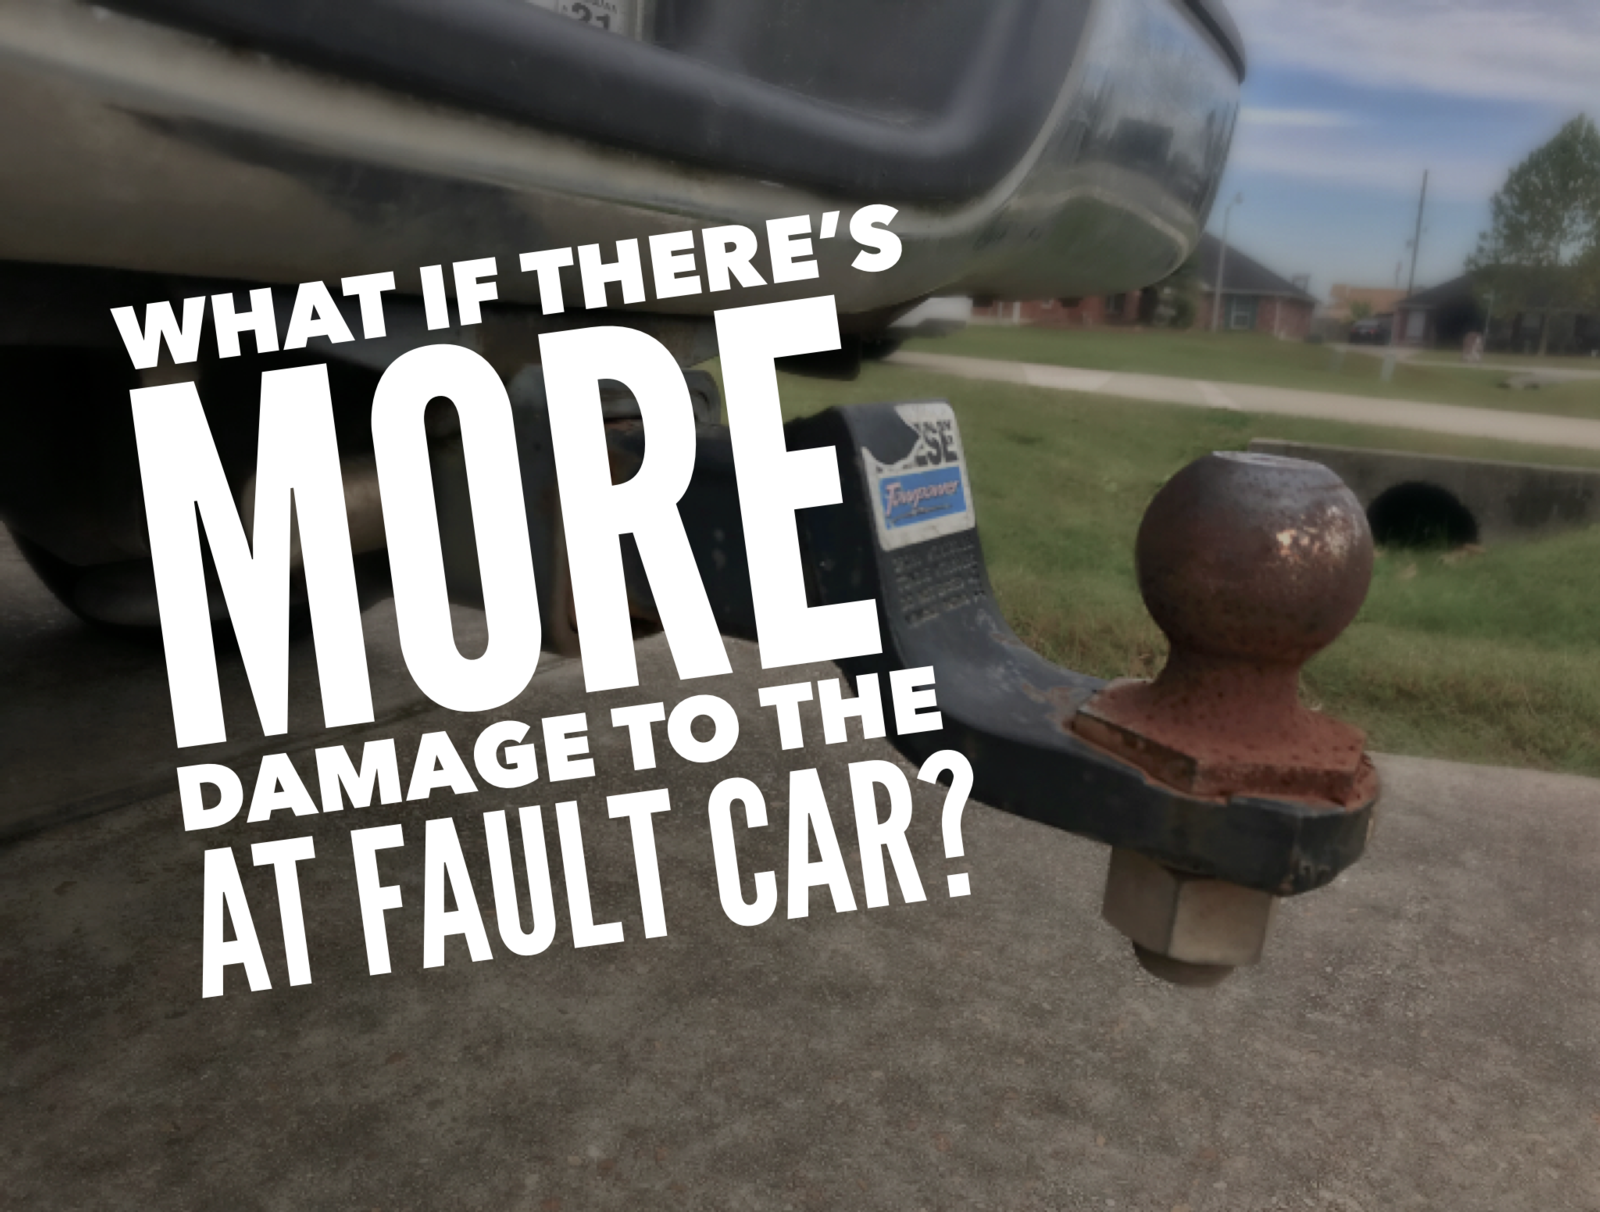 What if there's more damage to the at fault car in an accident?